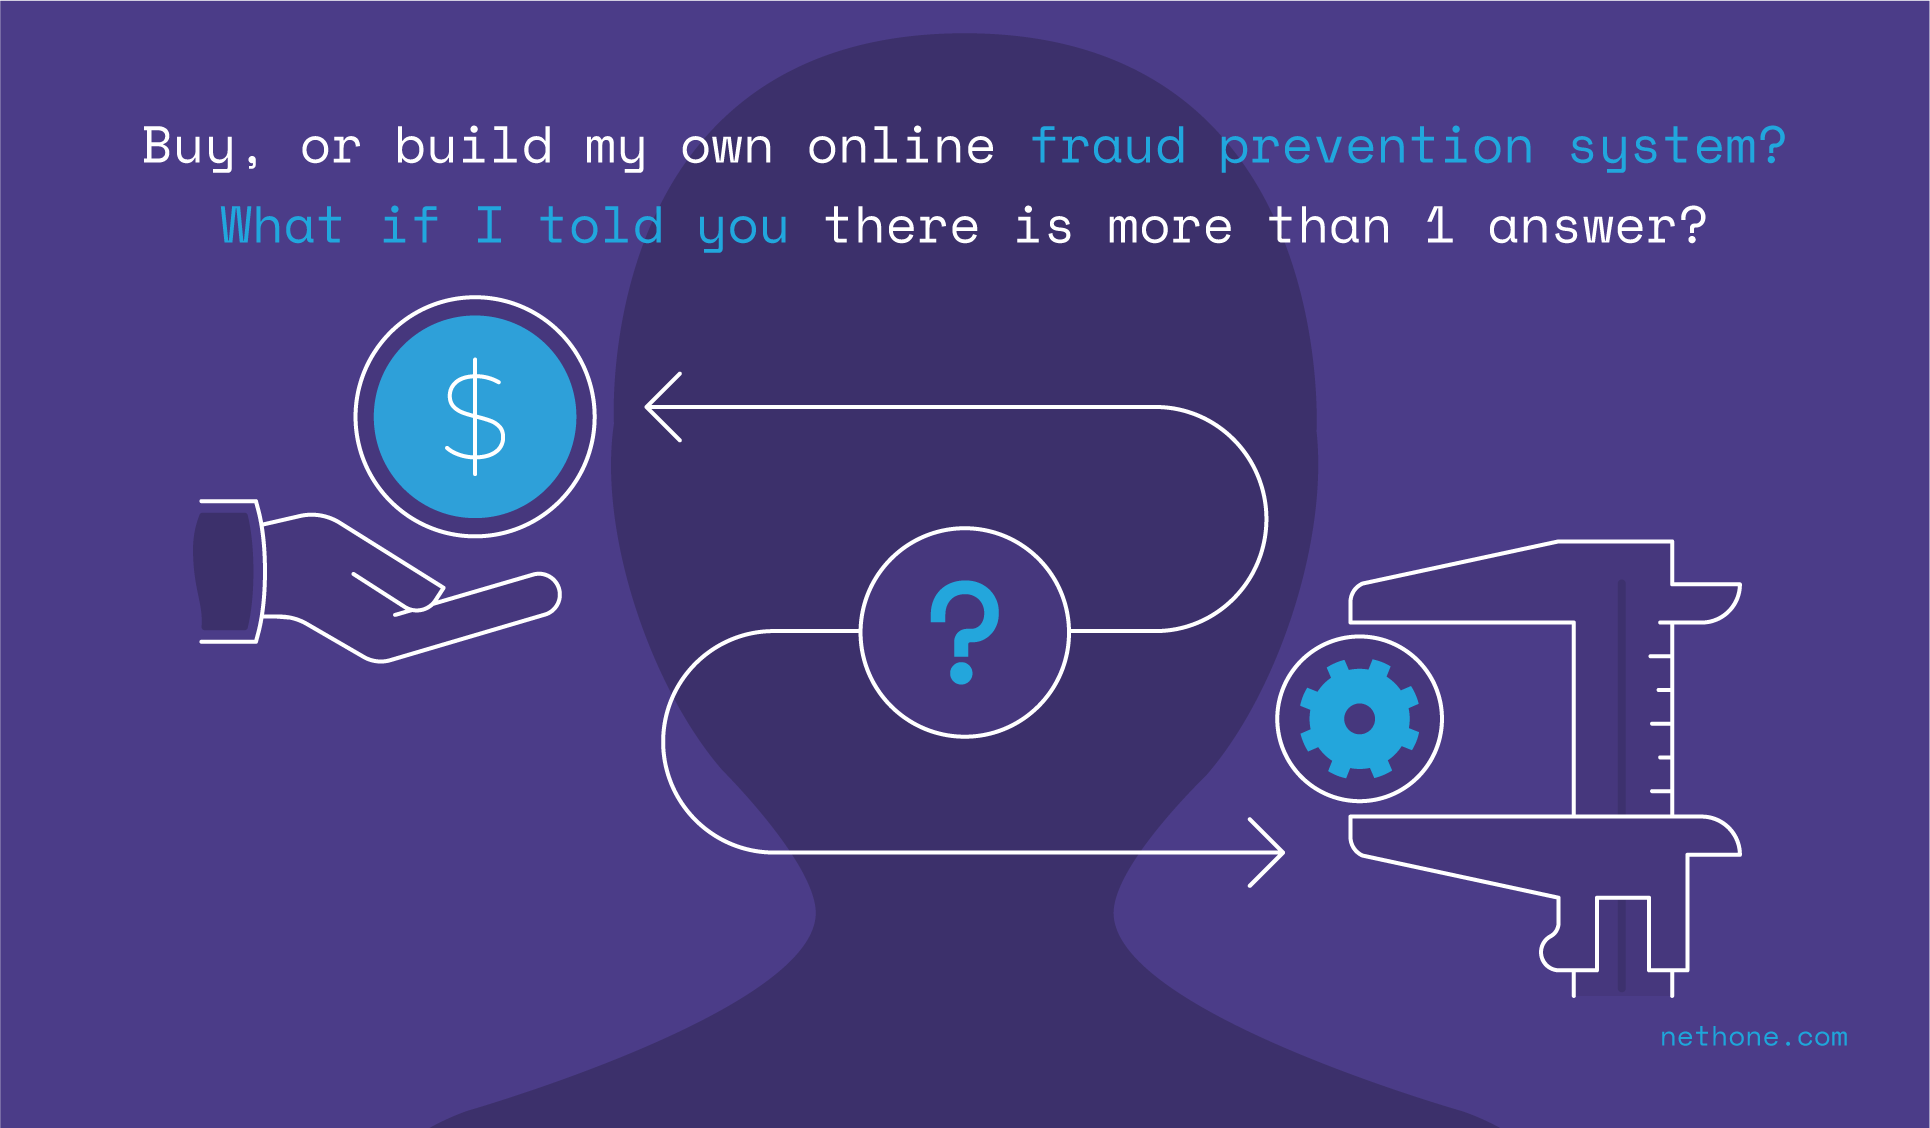 Buy, or build my own online fraud prevention system? What if I told you there is more than 1 answer?